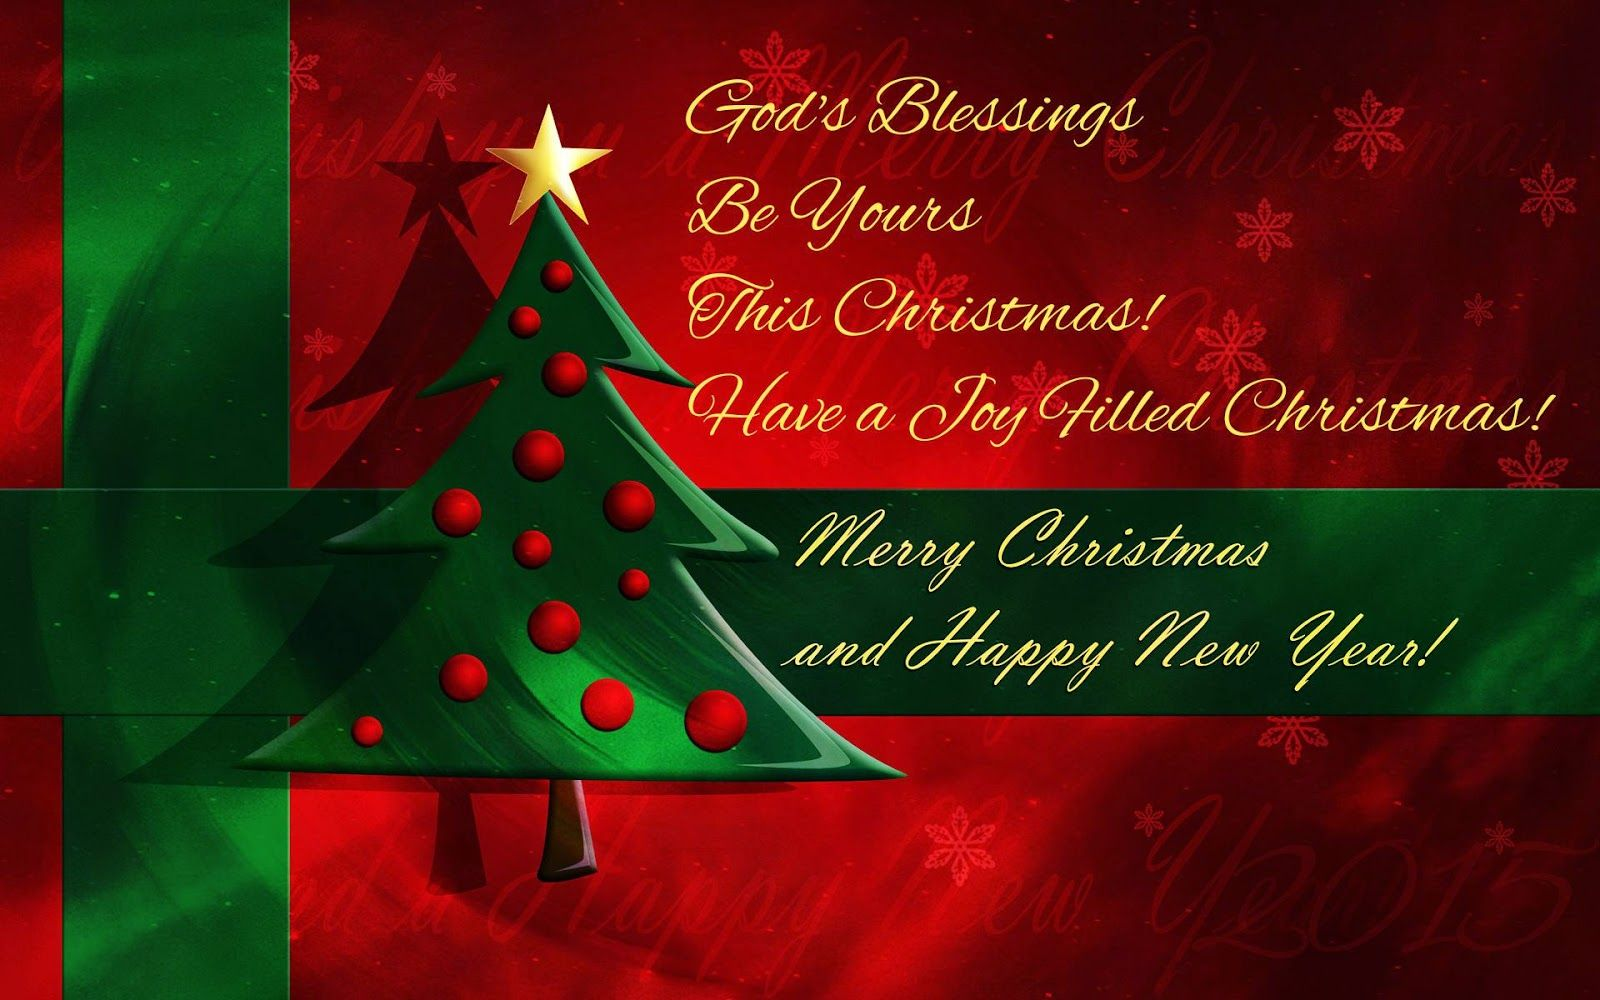 God Blessings Business Christmas Greetings Quotes Messages Wishes ...